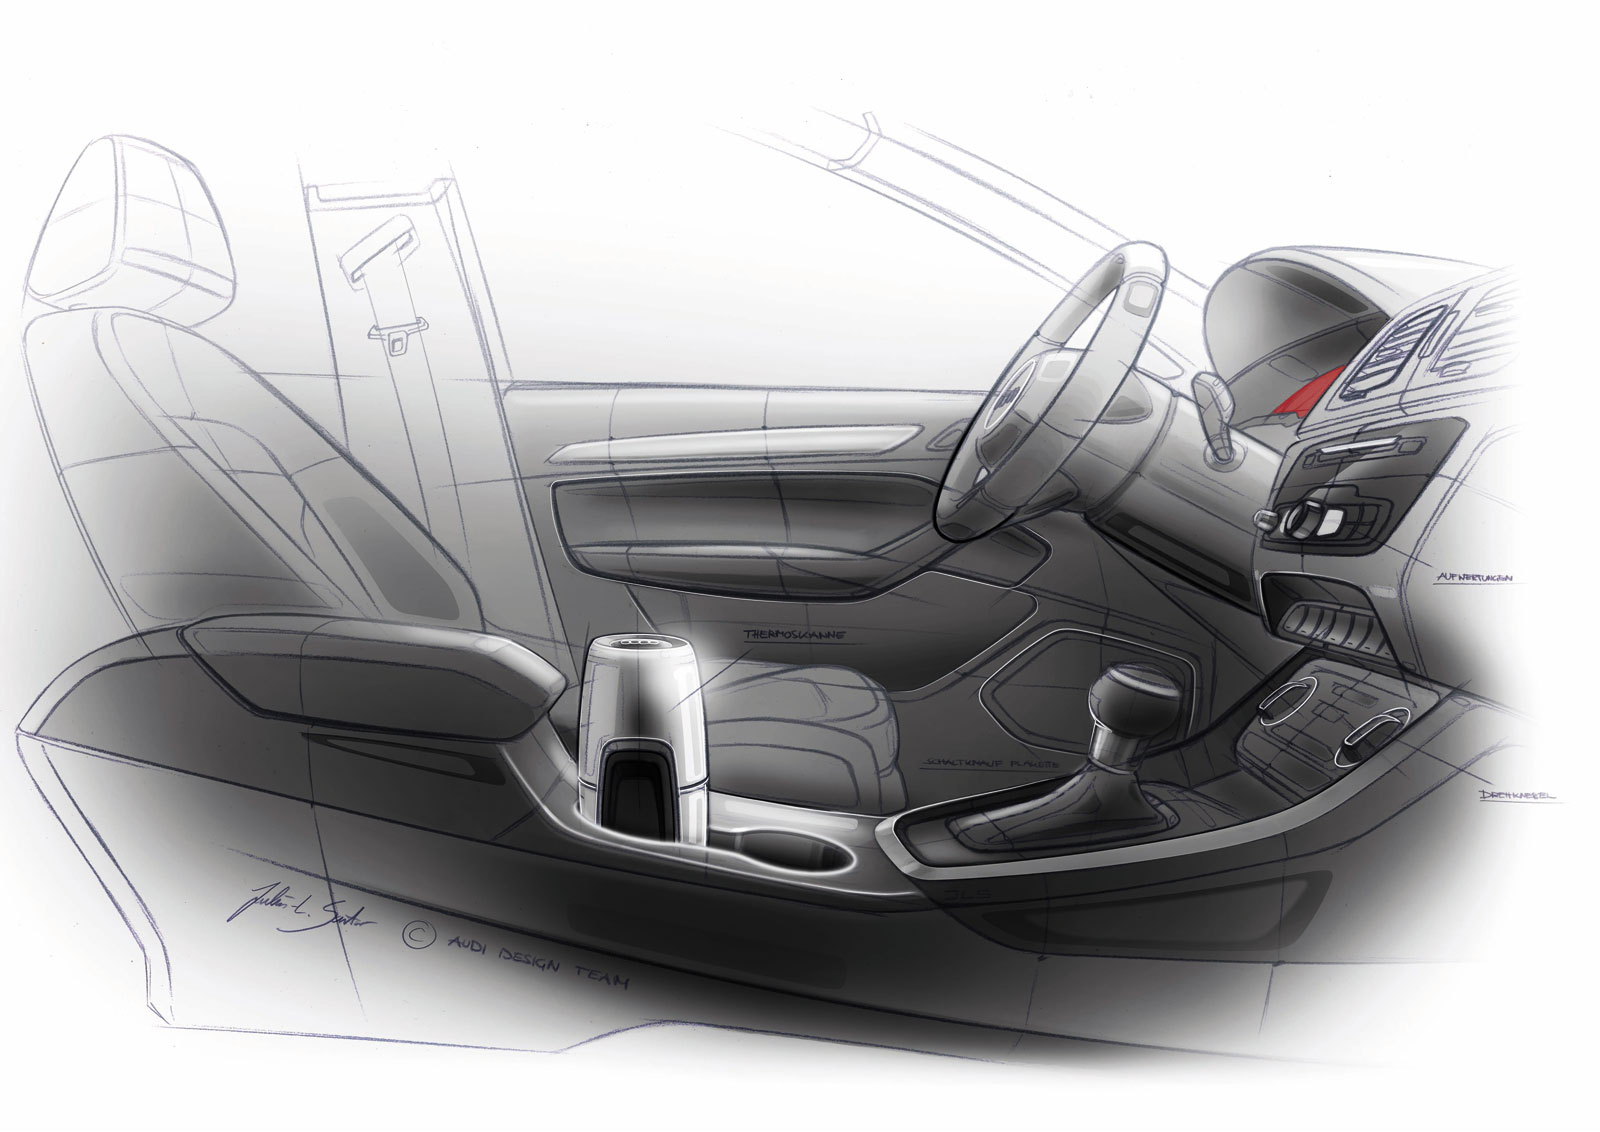 Audi Q3 Vail Interior Design Sketch Car Body Design